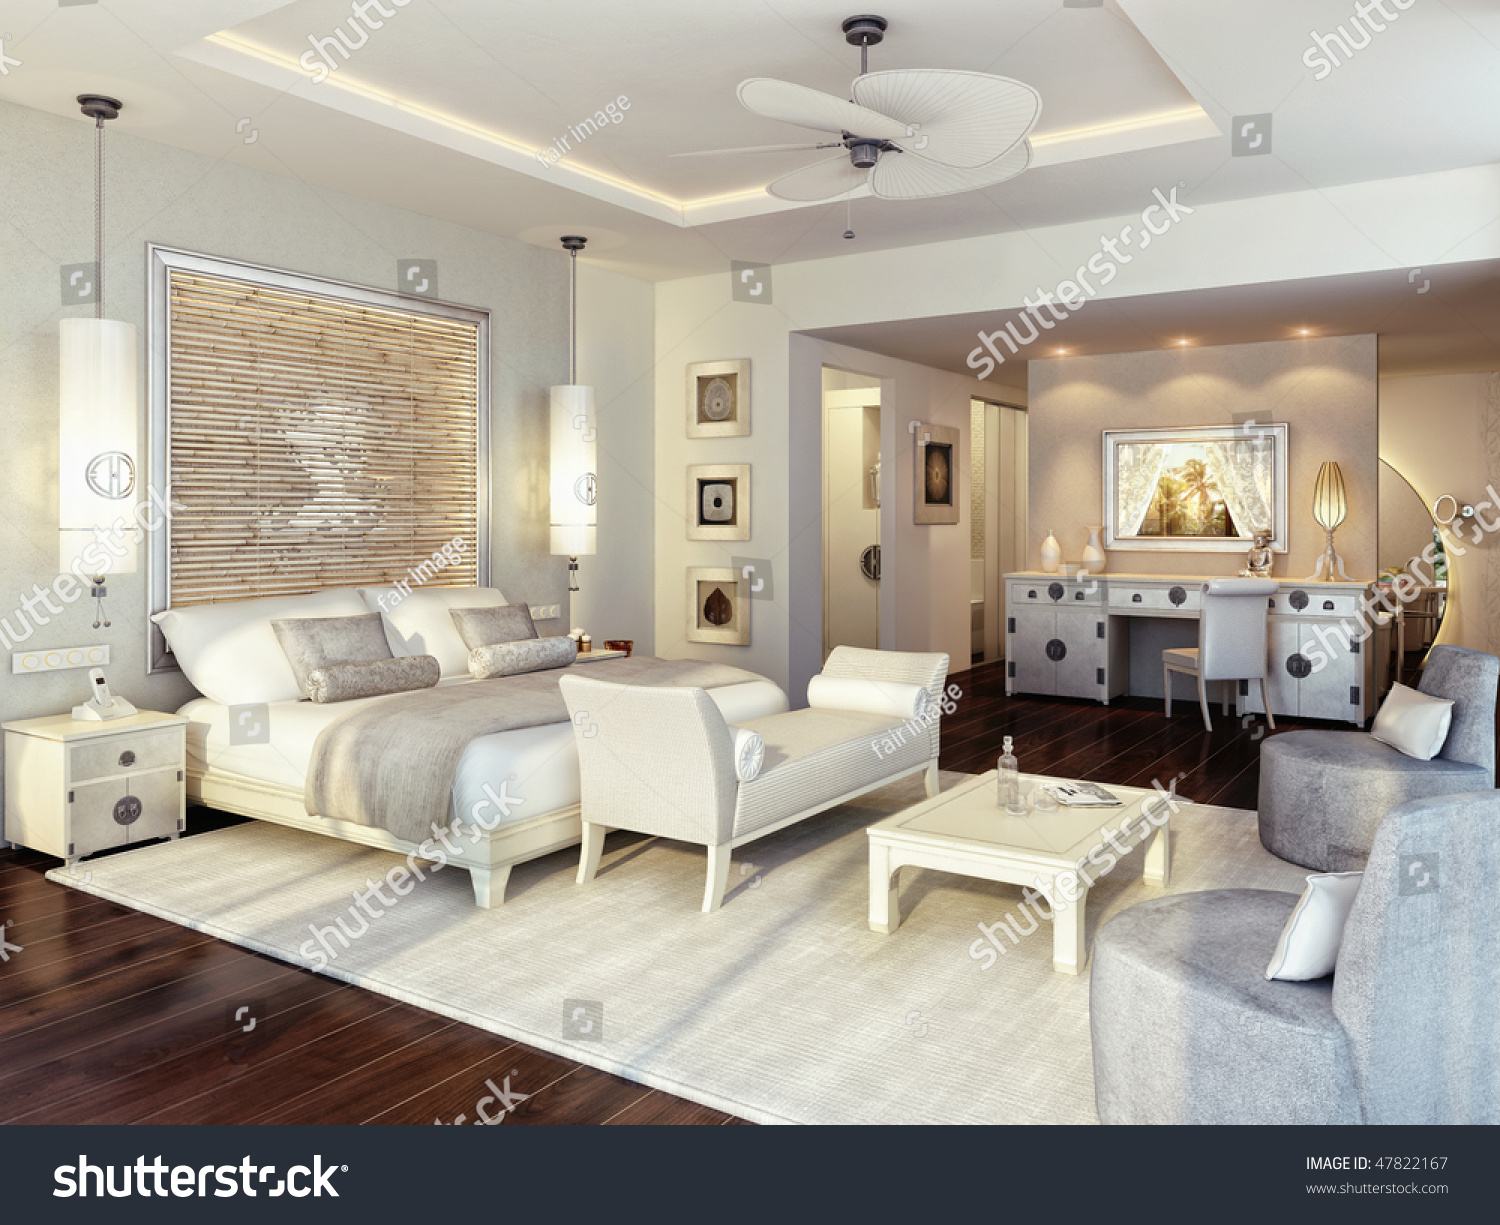 Hotel Room Design Room Hotel Stock Illustration 47822167 - Shutterstock